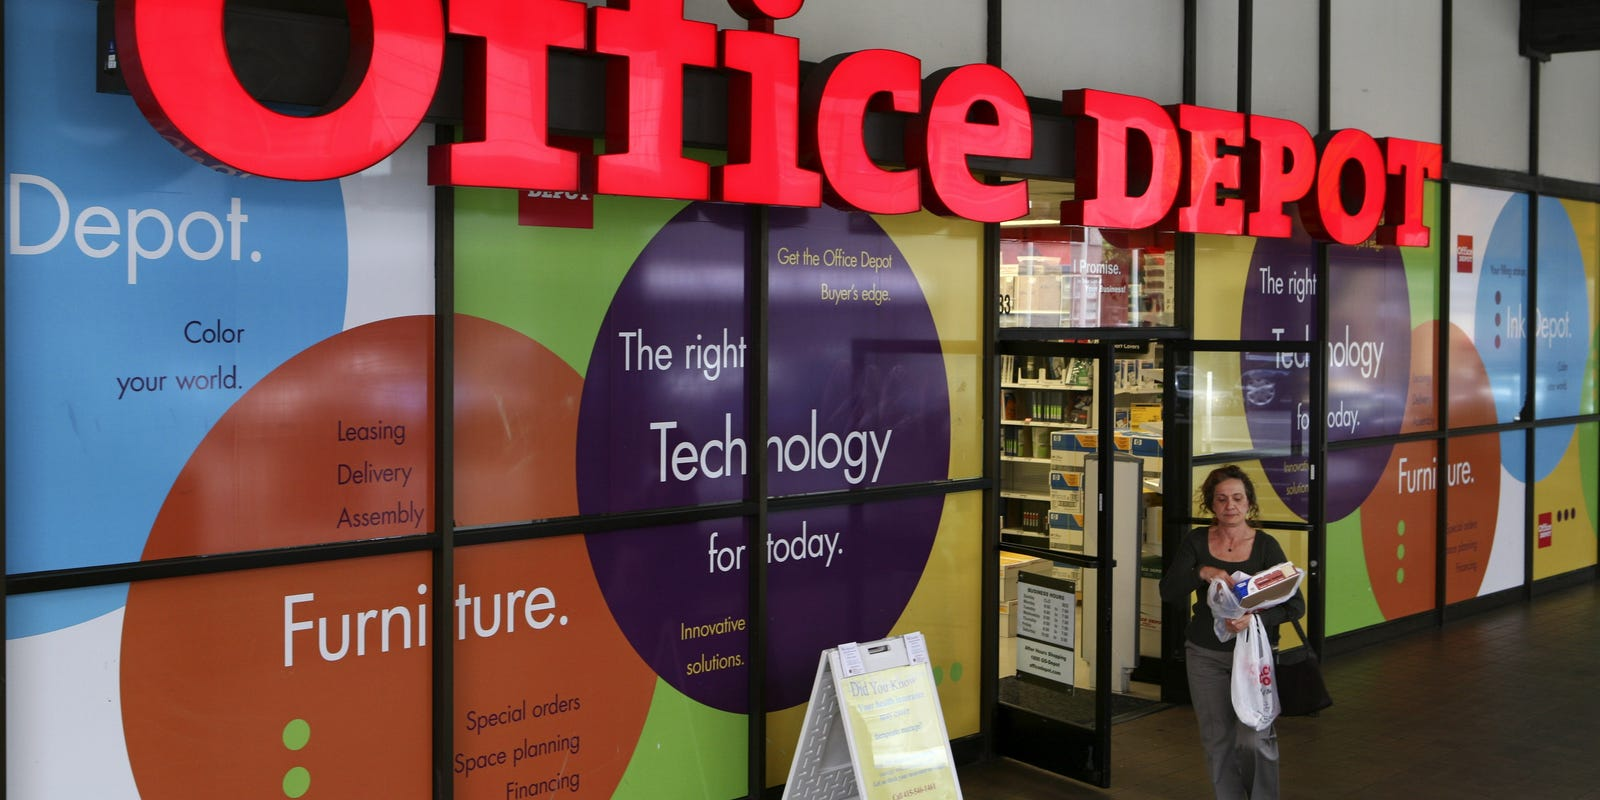 Office depot services register new product - Azcentral Office Depot